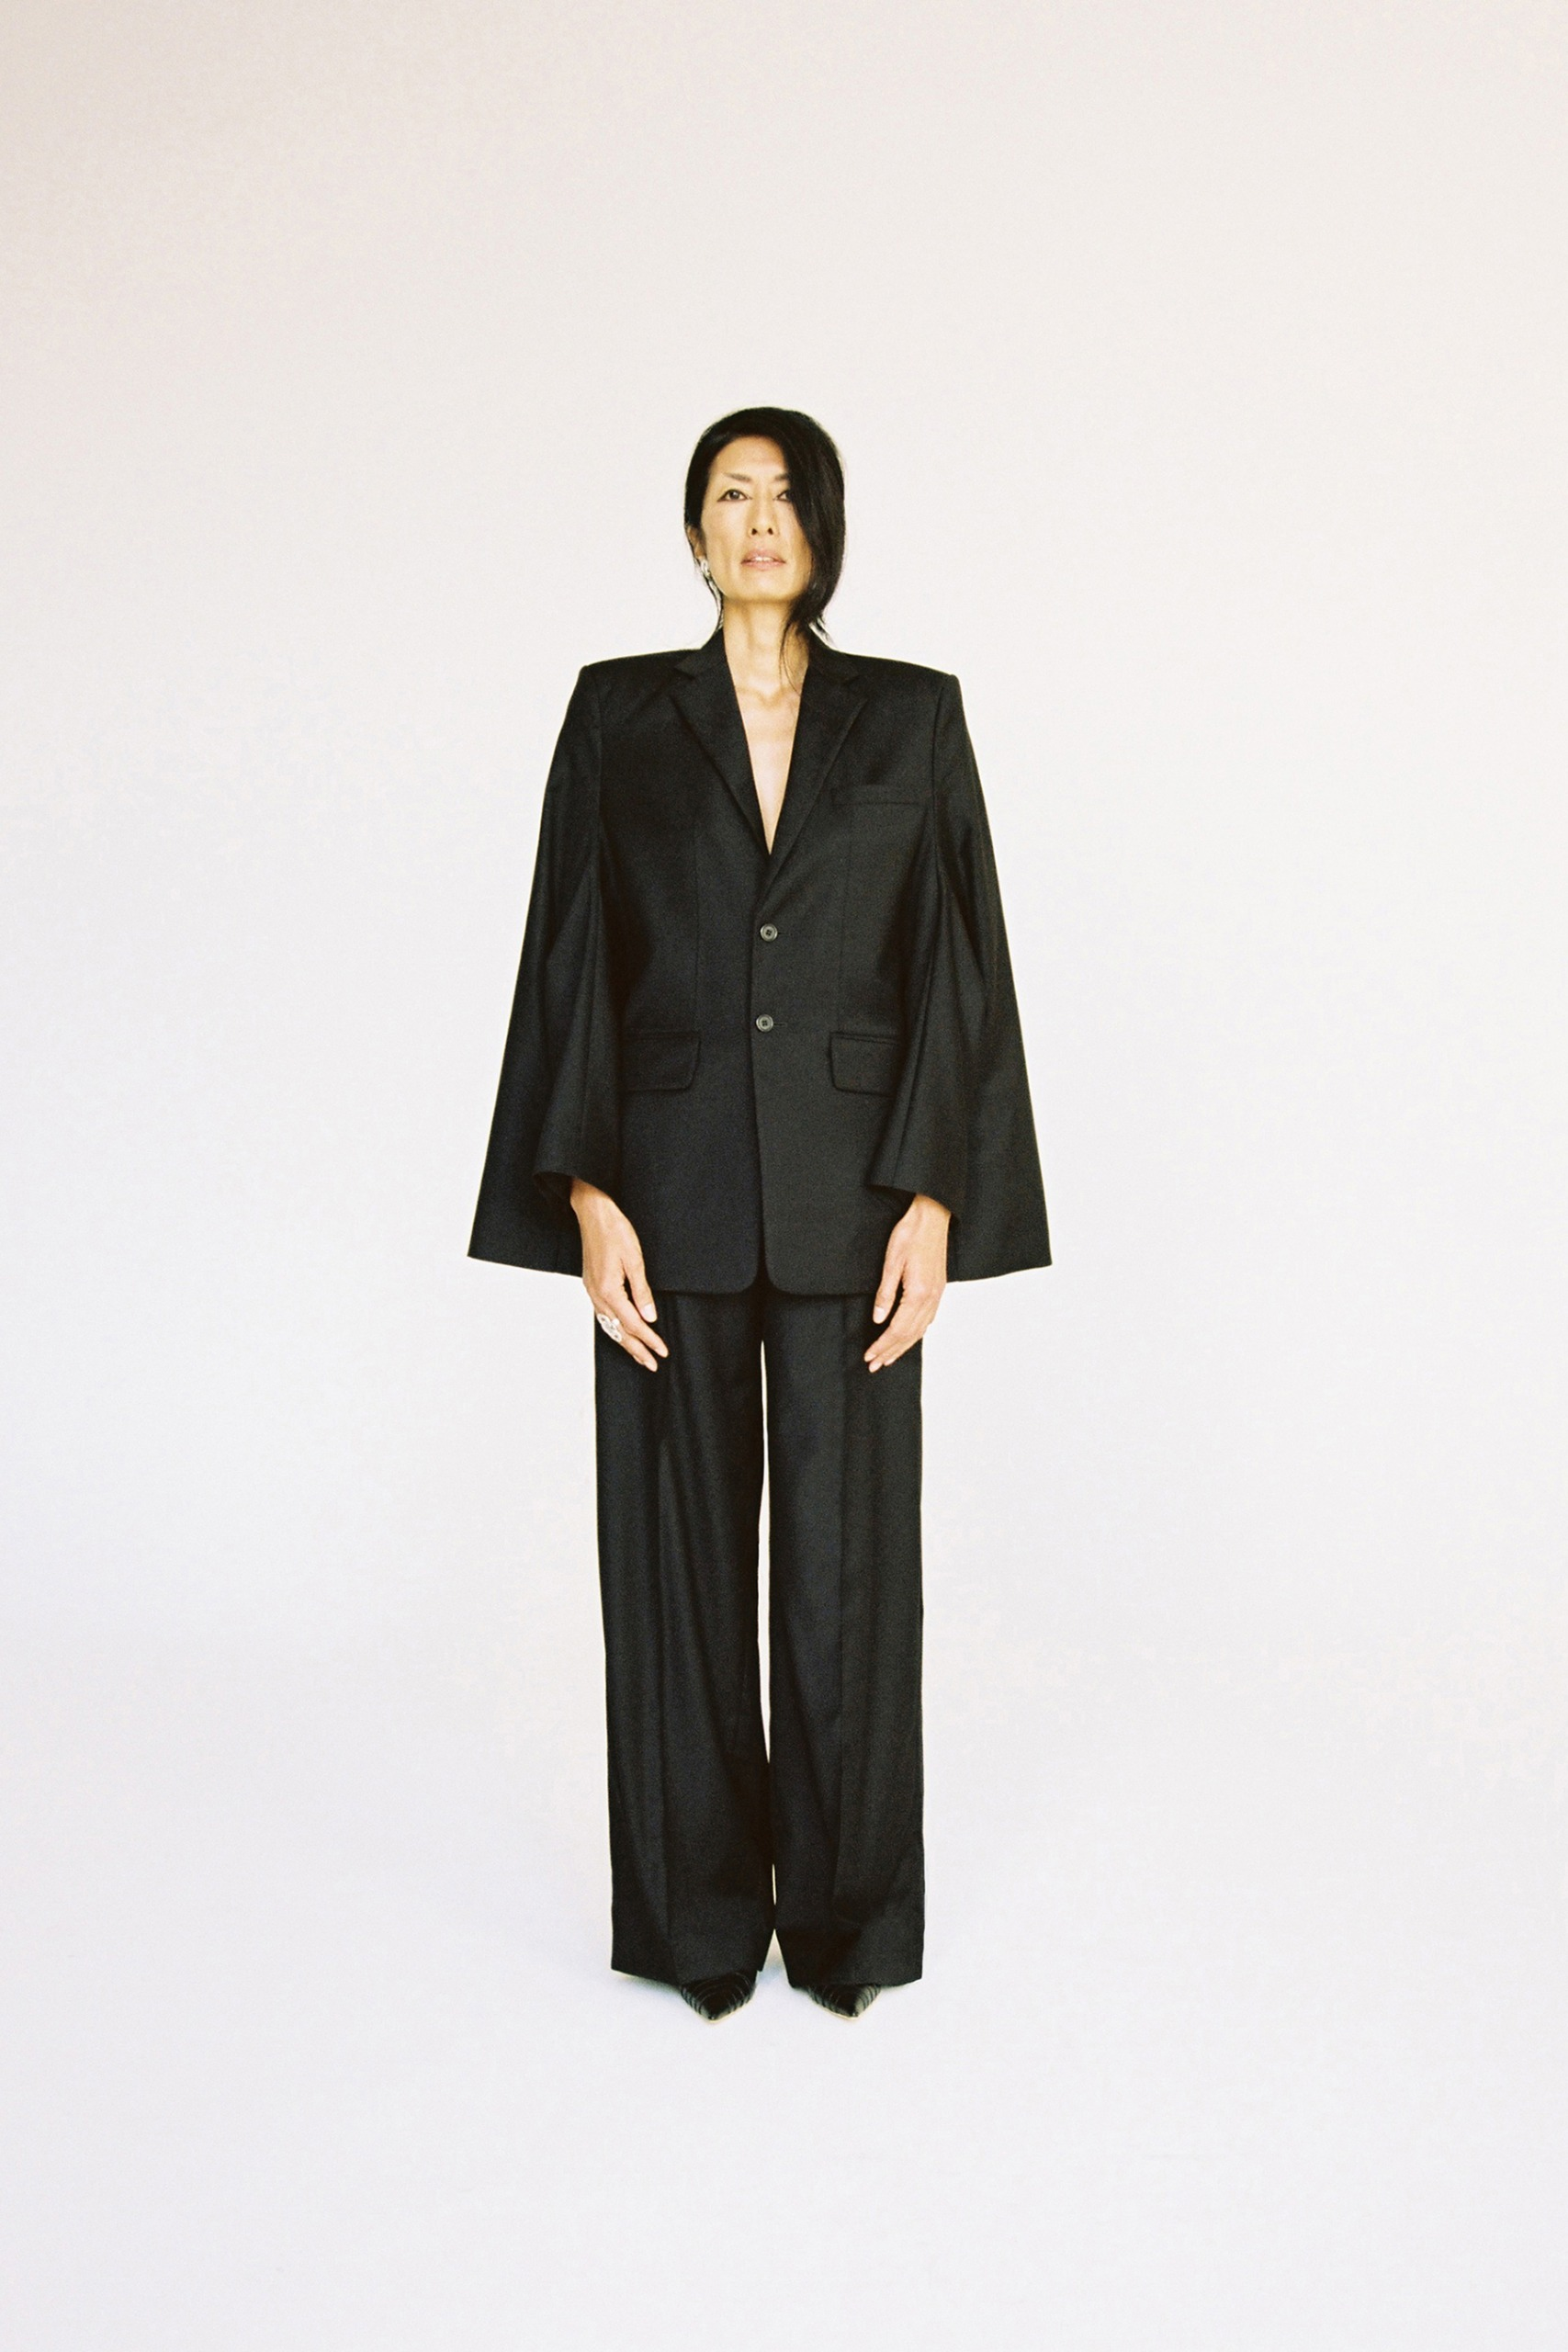 SITUATIONIST SS22 LOOK 01